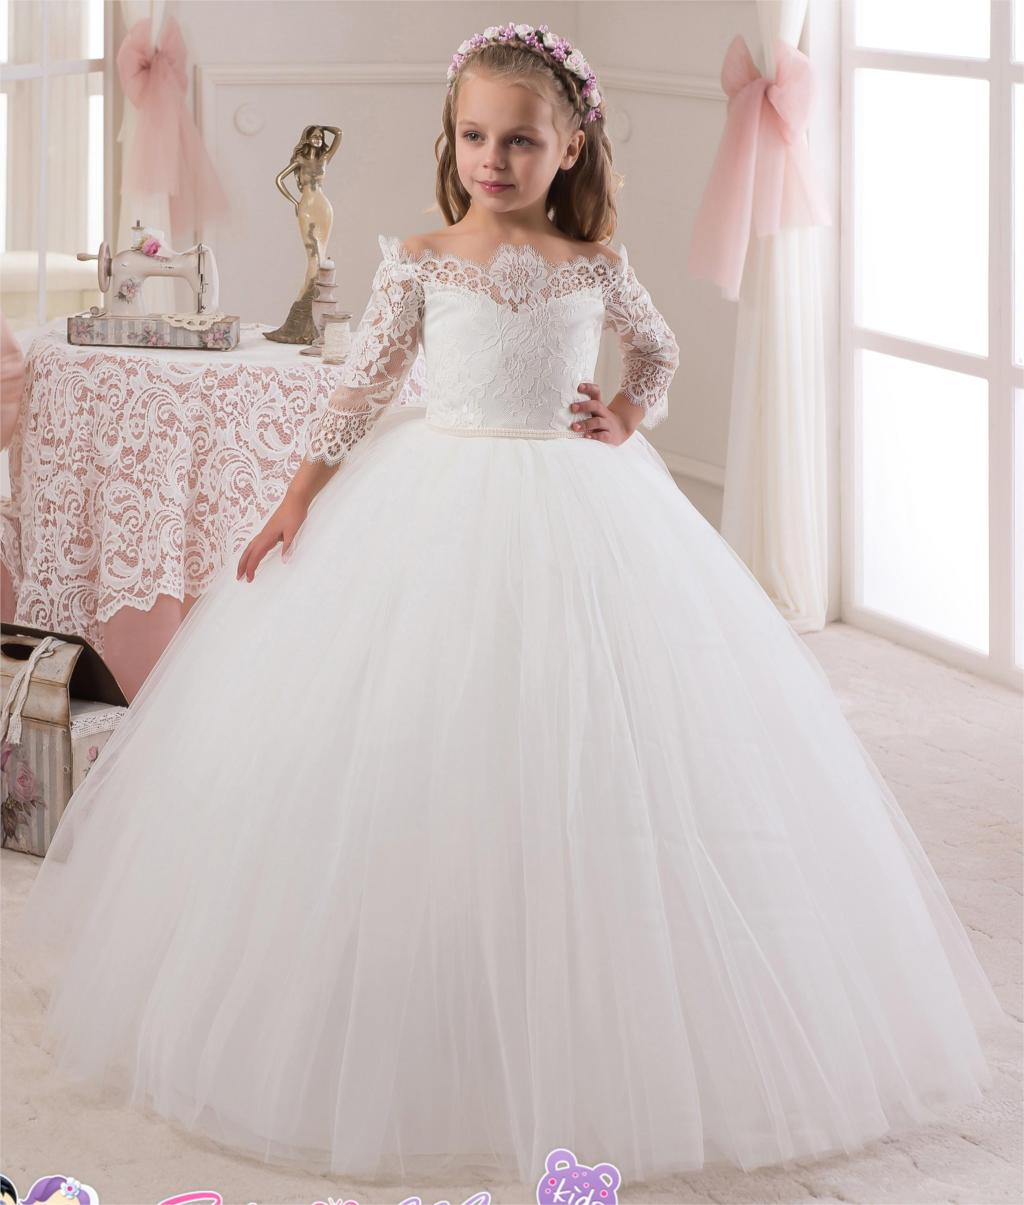 9aaf2a3df 2016 Lace Long Sleeves Pearls Tulle Flower Girl Dresses Child ...